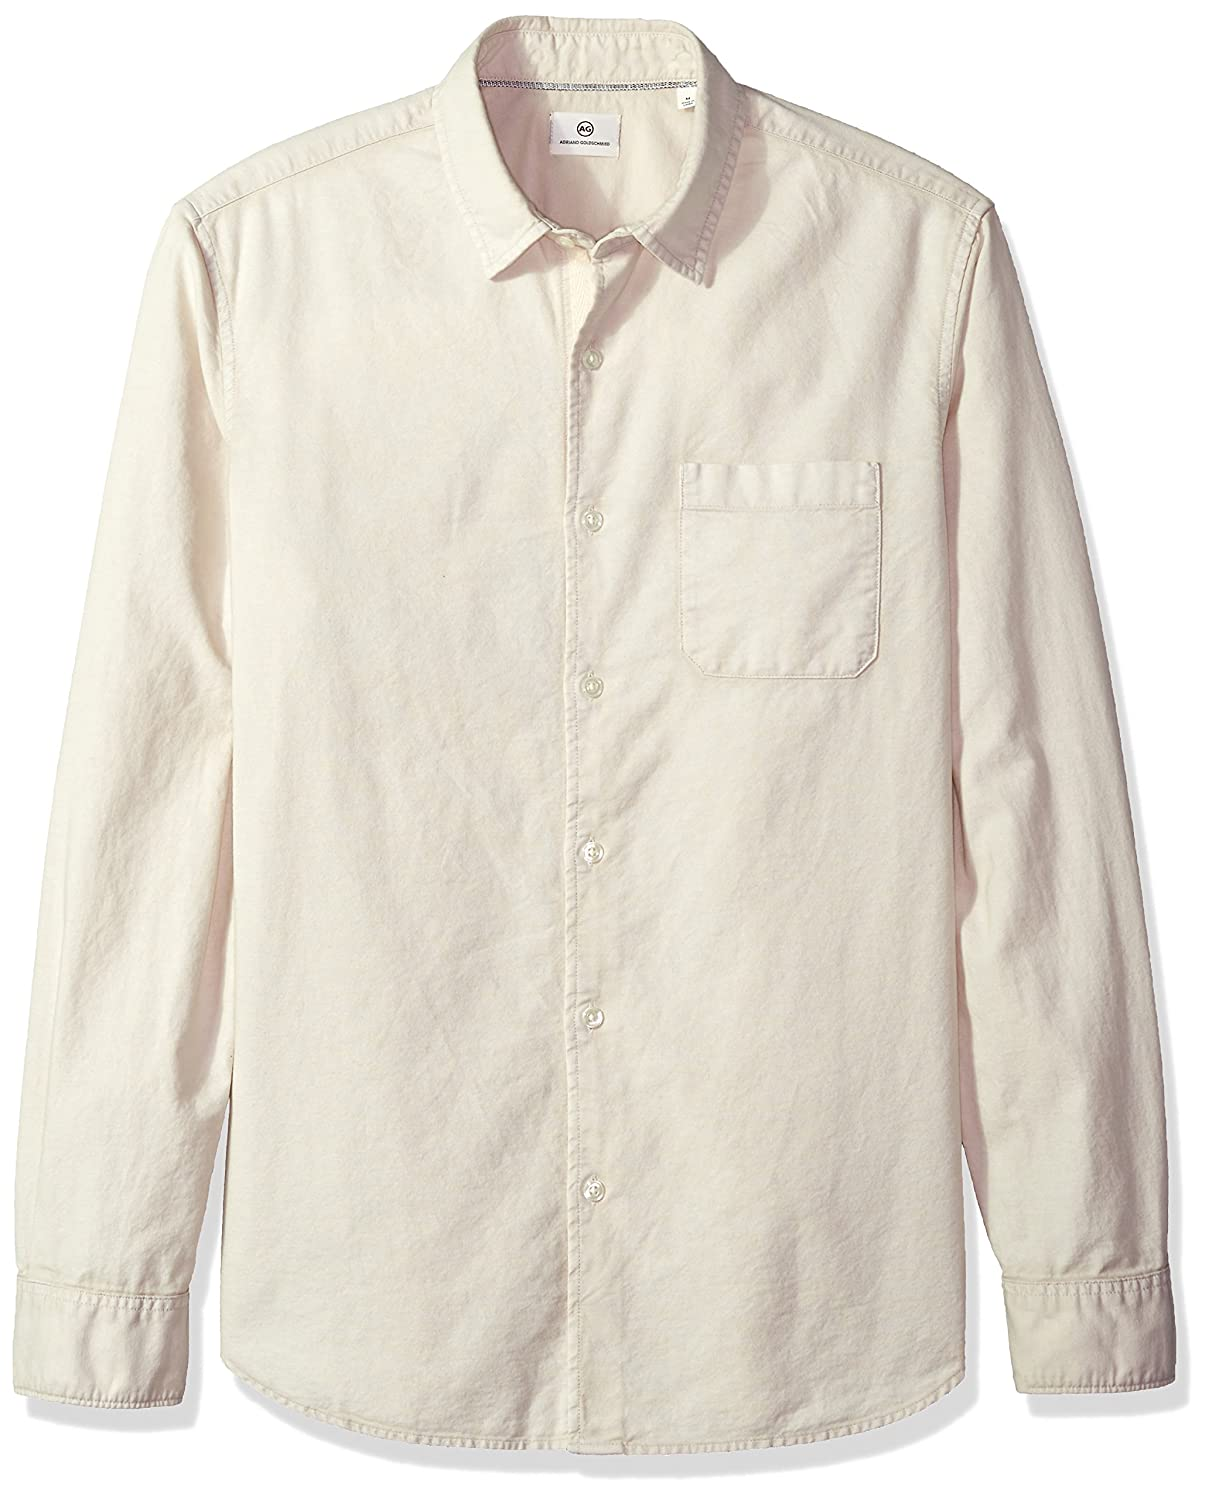 AG Adriano Goldschmied Mens Bristol Long Sleeve Slub Cotton Button Down Oxford